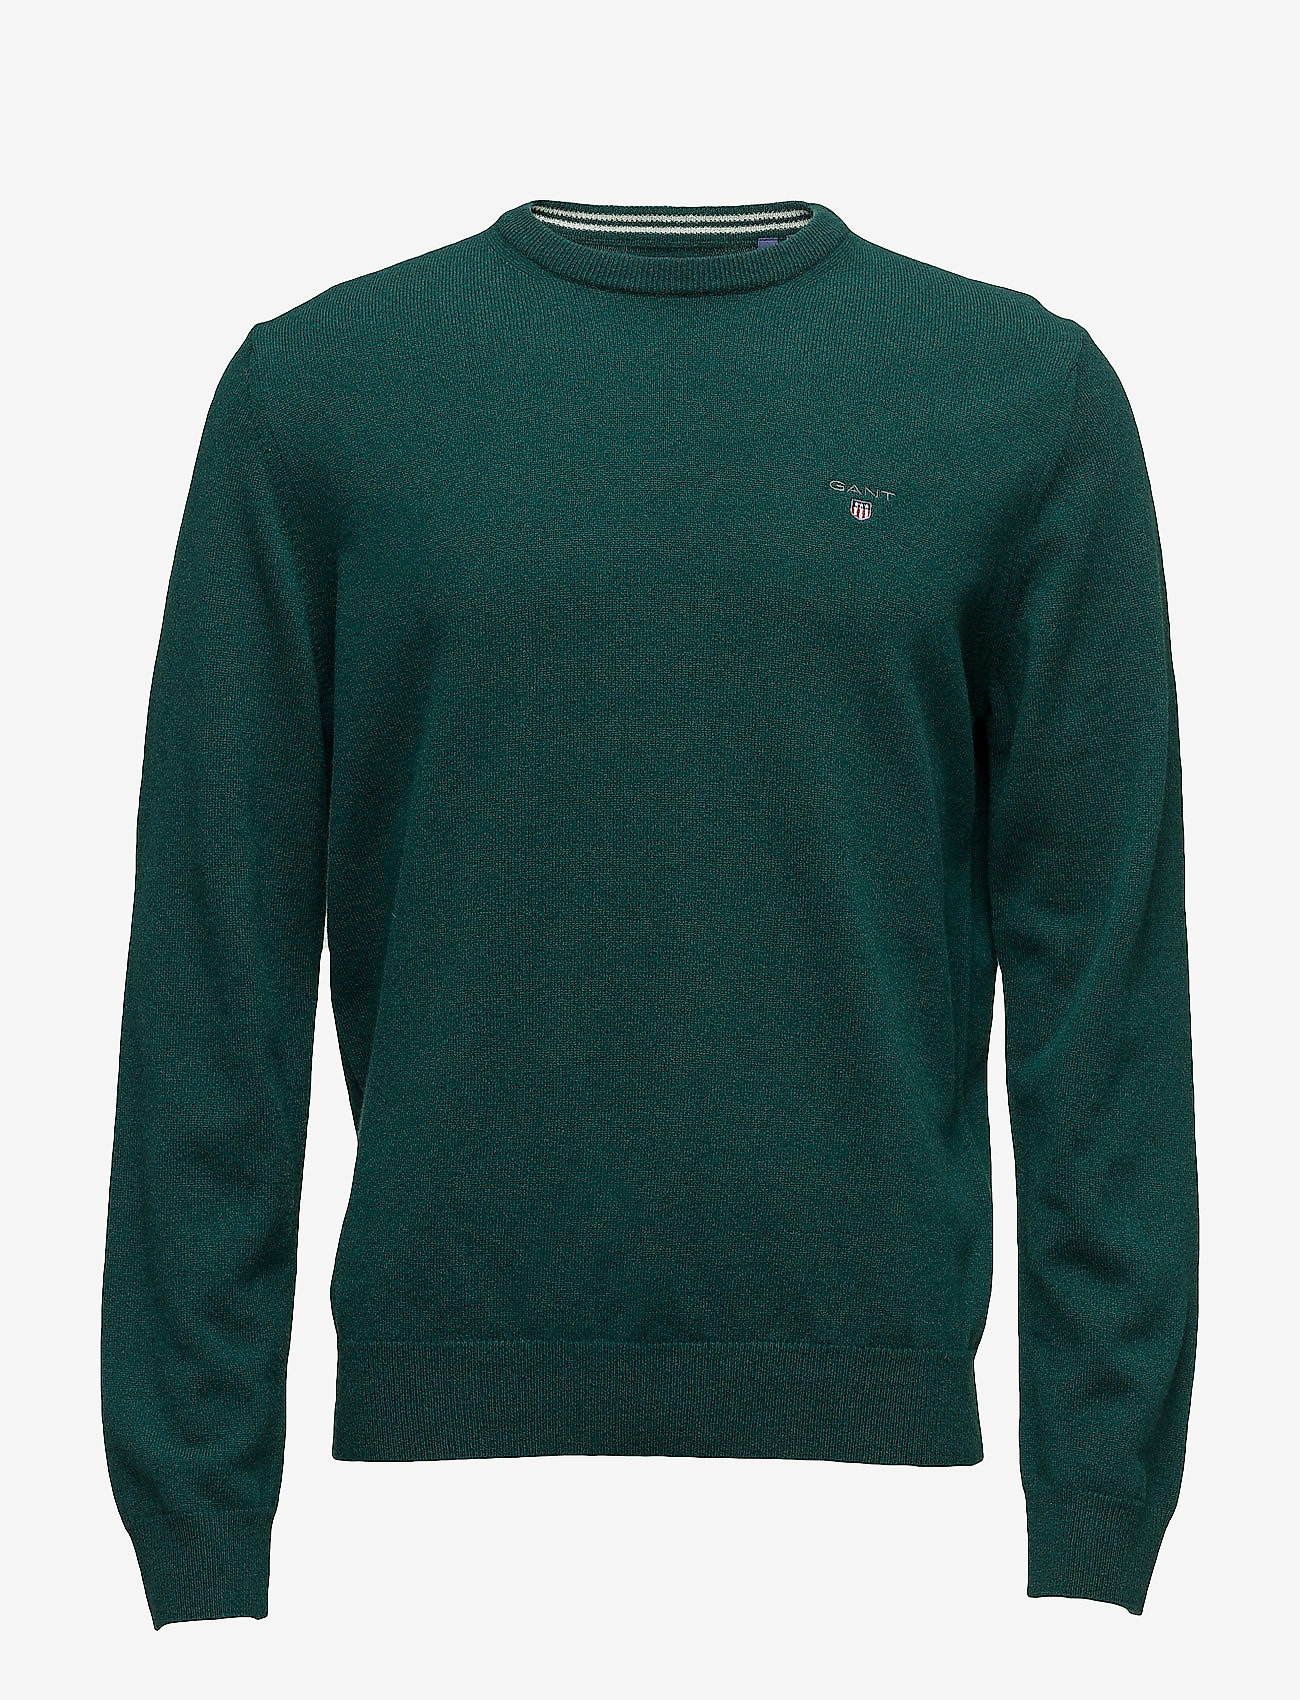 GANT - SUPERFINE LAMBSWOOL CREW - basic knitwear - tartan green - 0